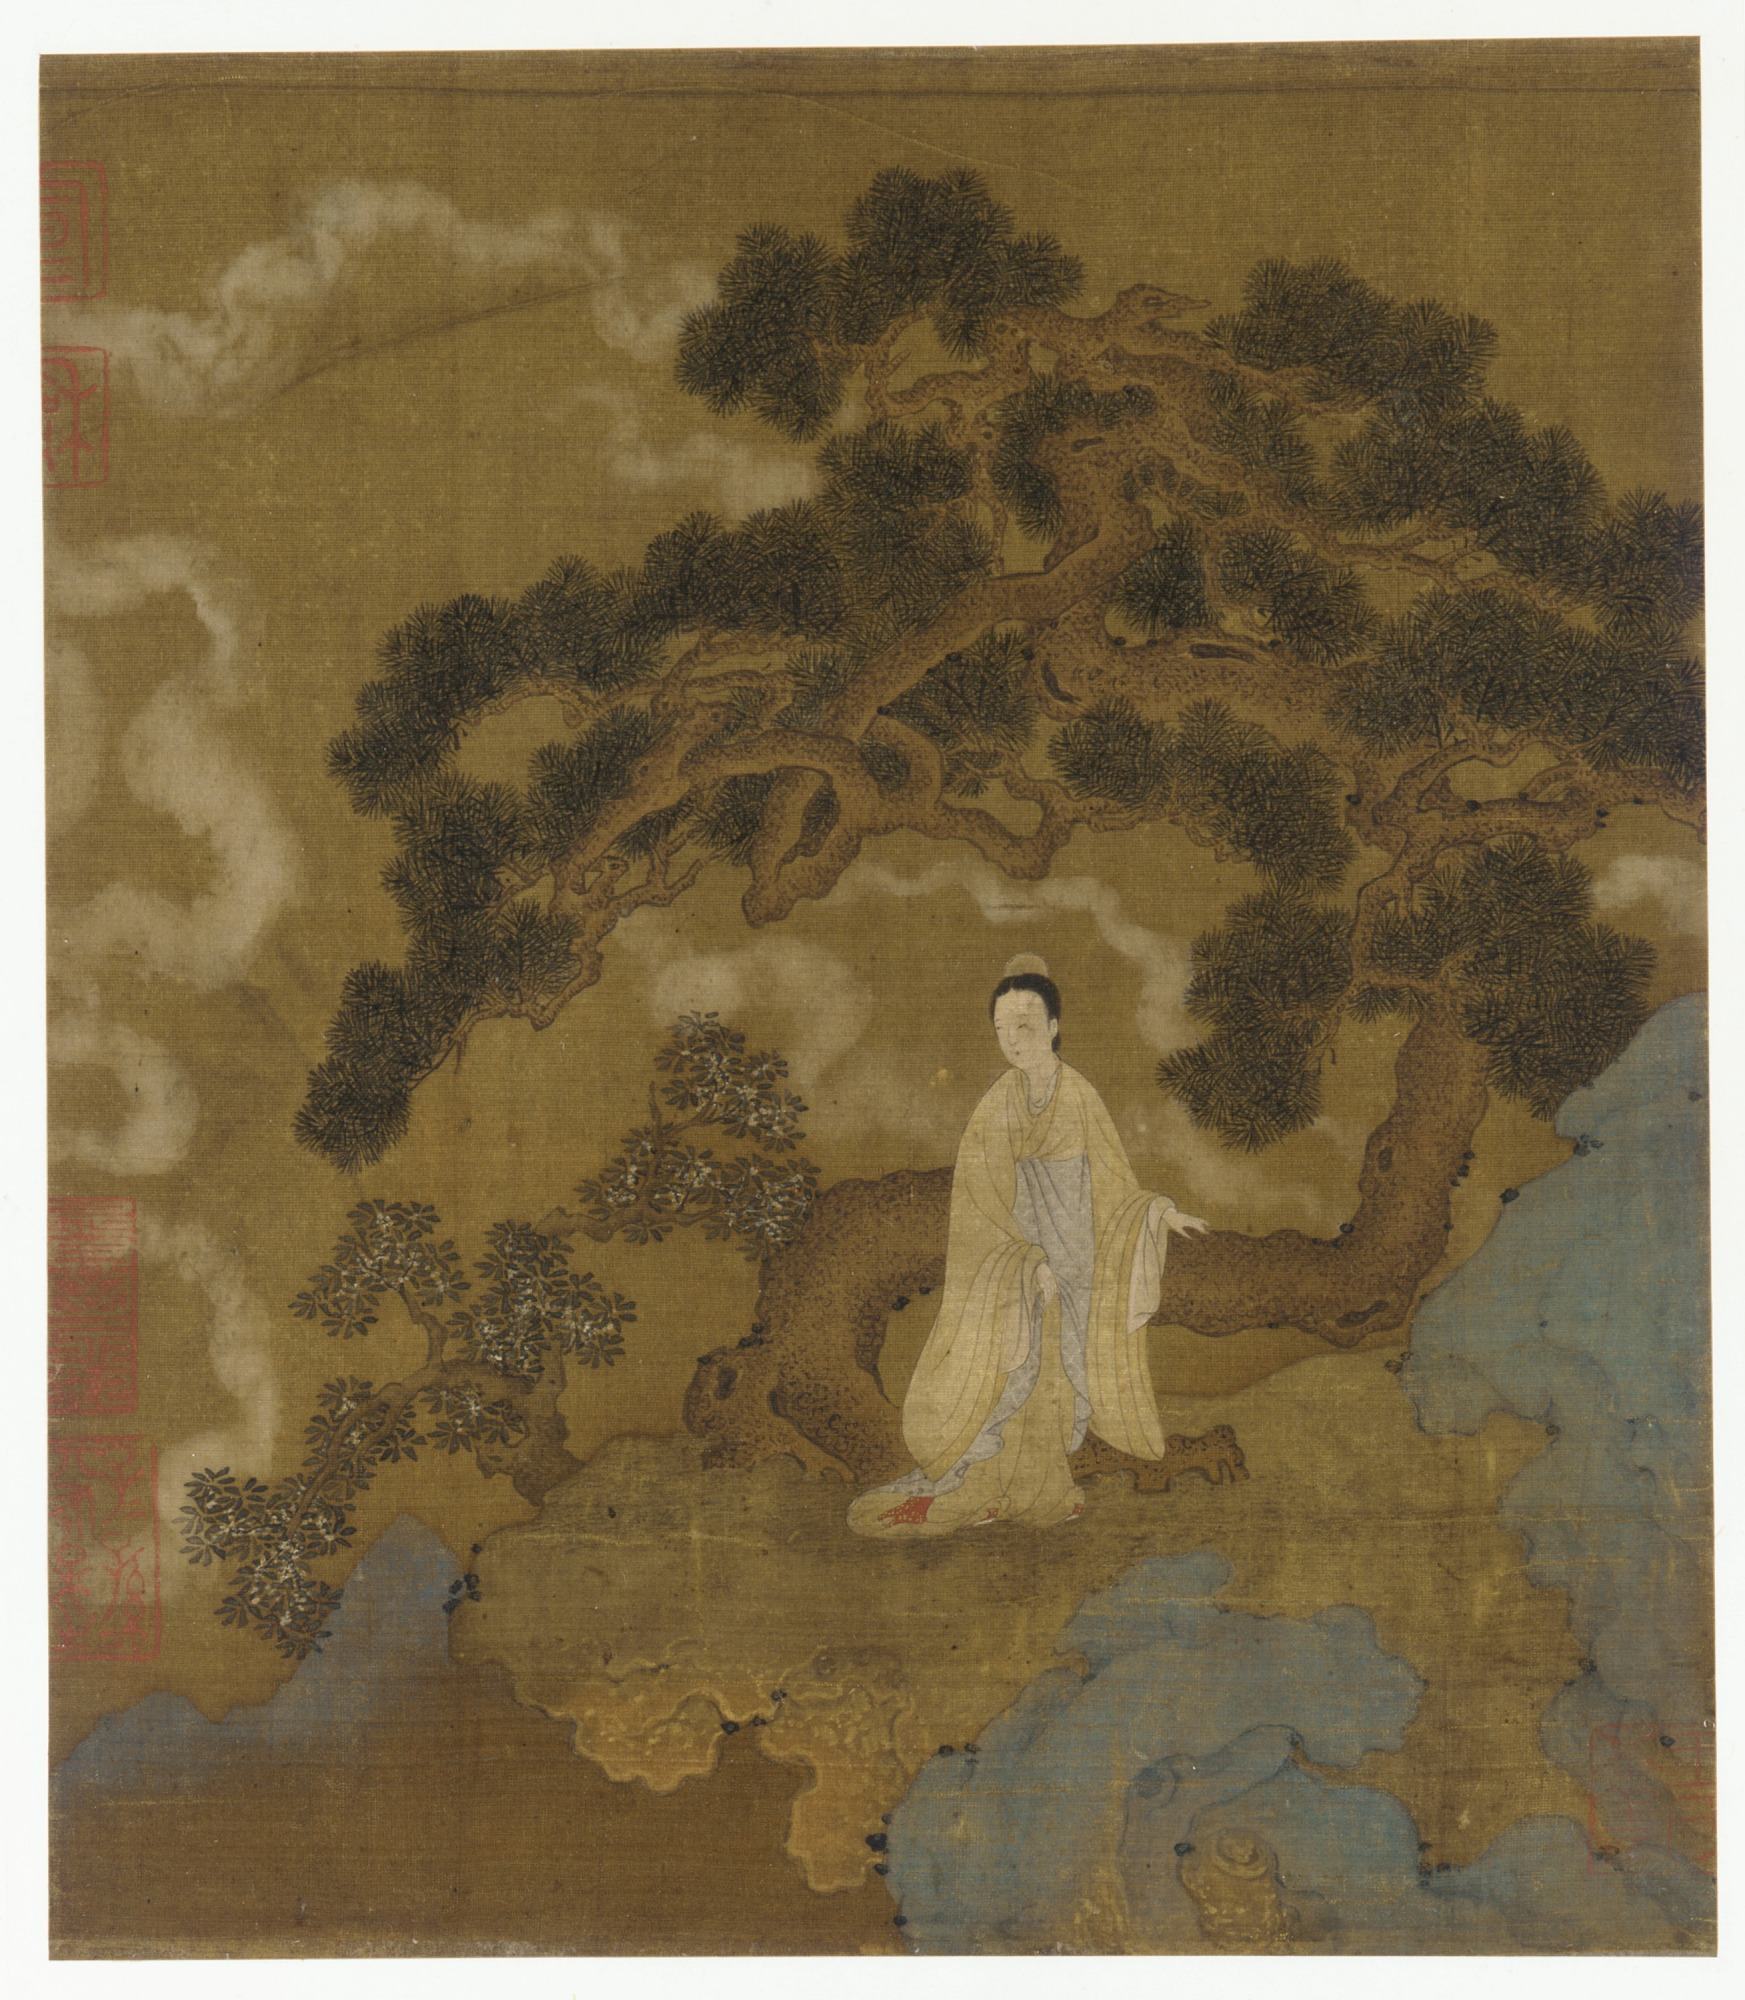 Lady Under a Gnarled Pine Tree